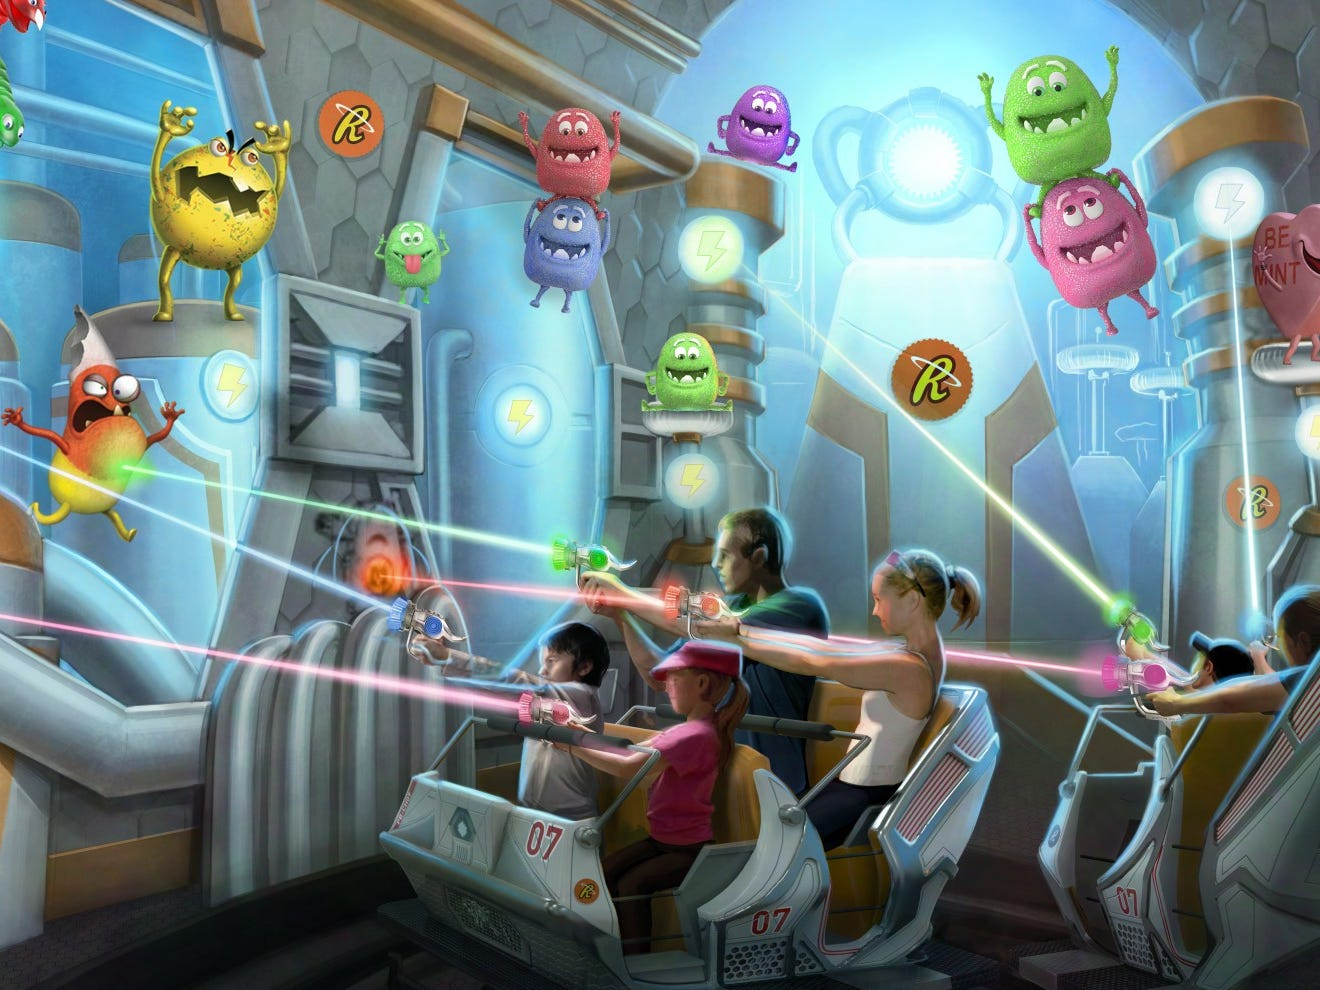 The former Reese's Xtreme Cup Challenge at Hersheypark will morph into Reese's Cupfusion. In the new version of the interactive dark ride, visitors are assigned the mission of protecting the candy factory while scoring points.